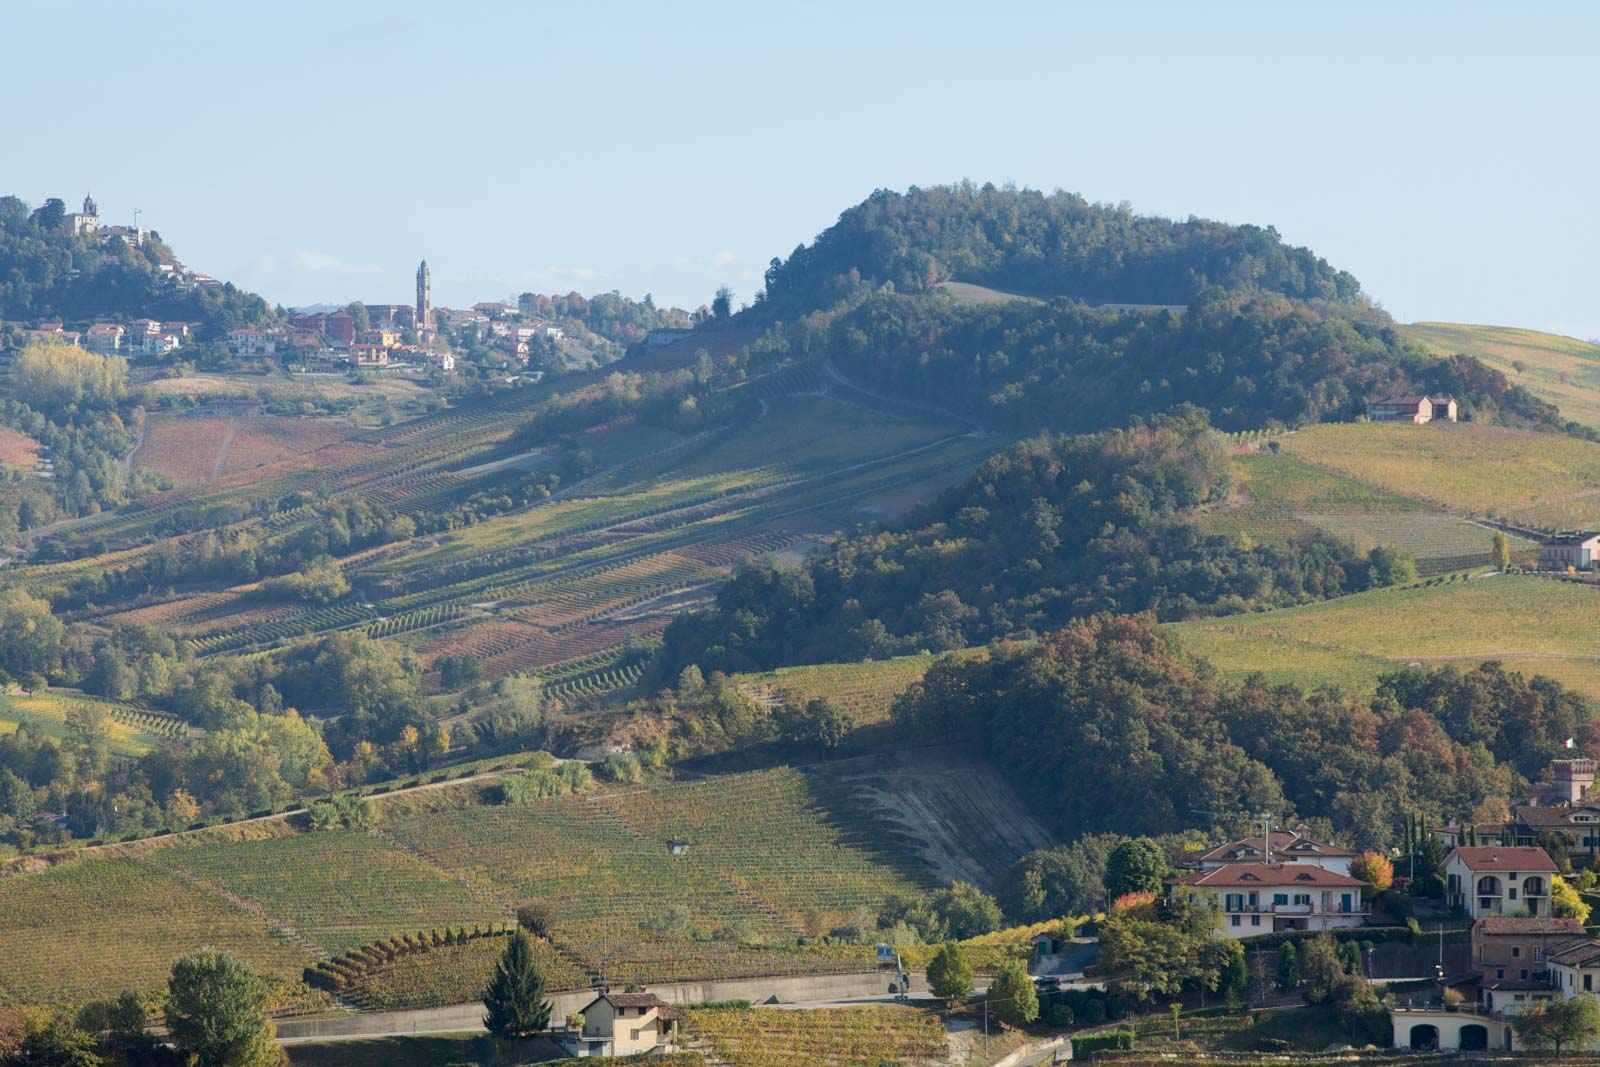 A view of Monforte d'Alba, tucked away above the Bussia vineyard, as seen from near La Morra. ©Kevin Day/Opening a Bottle